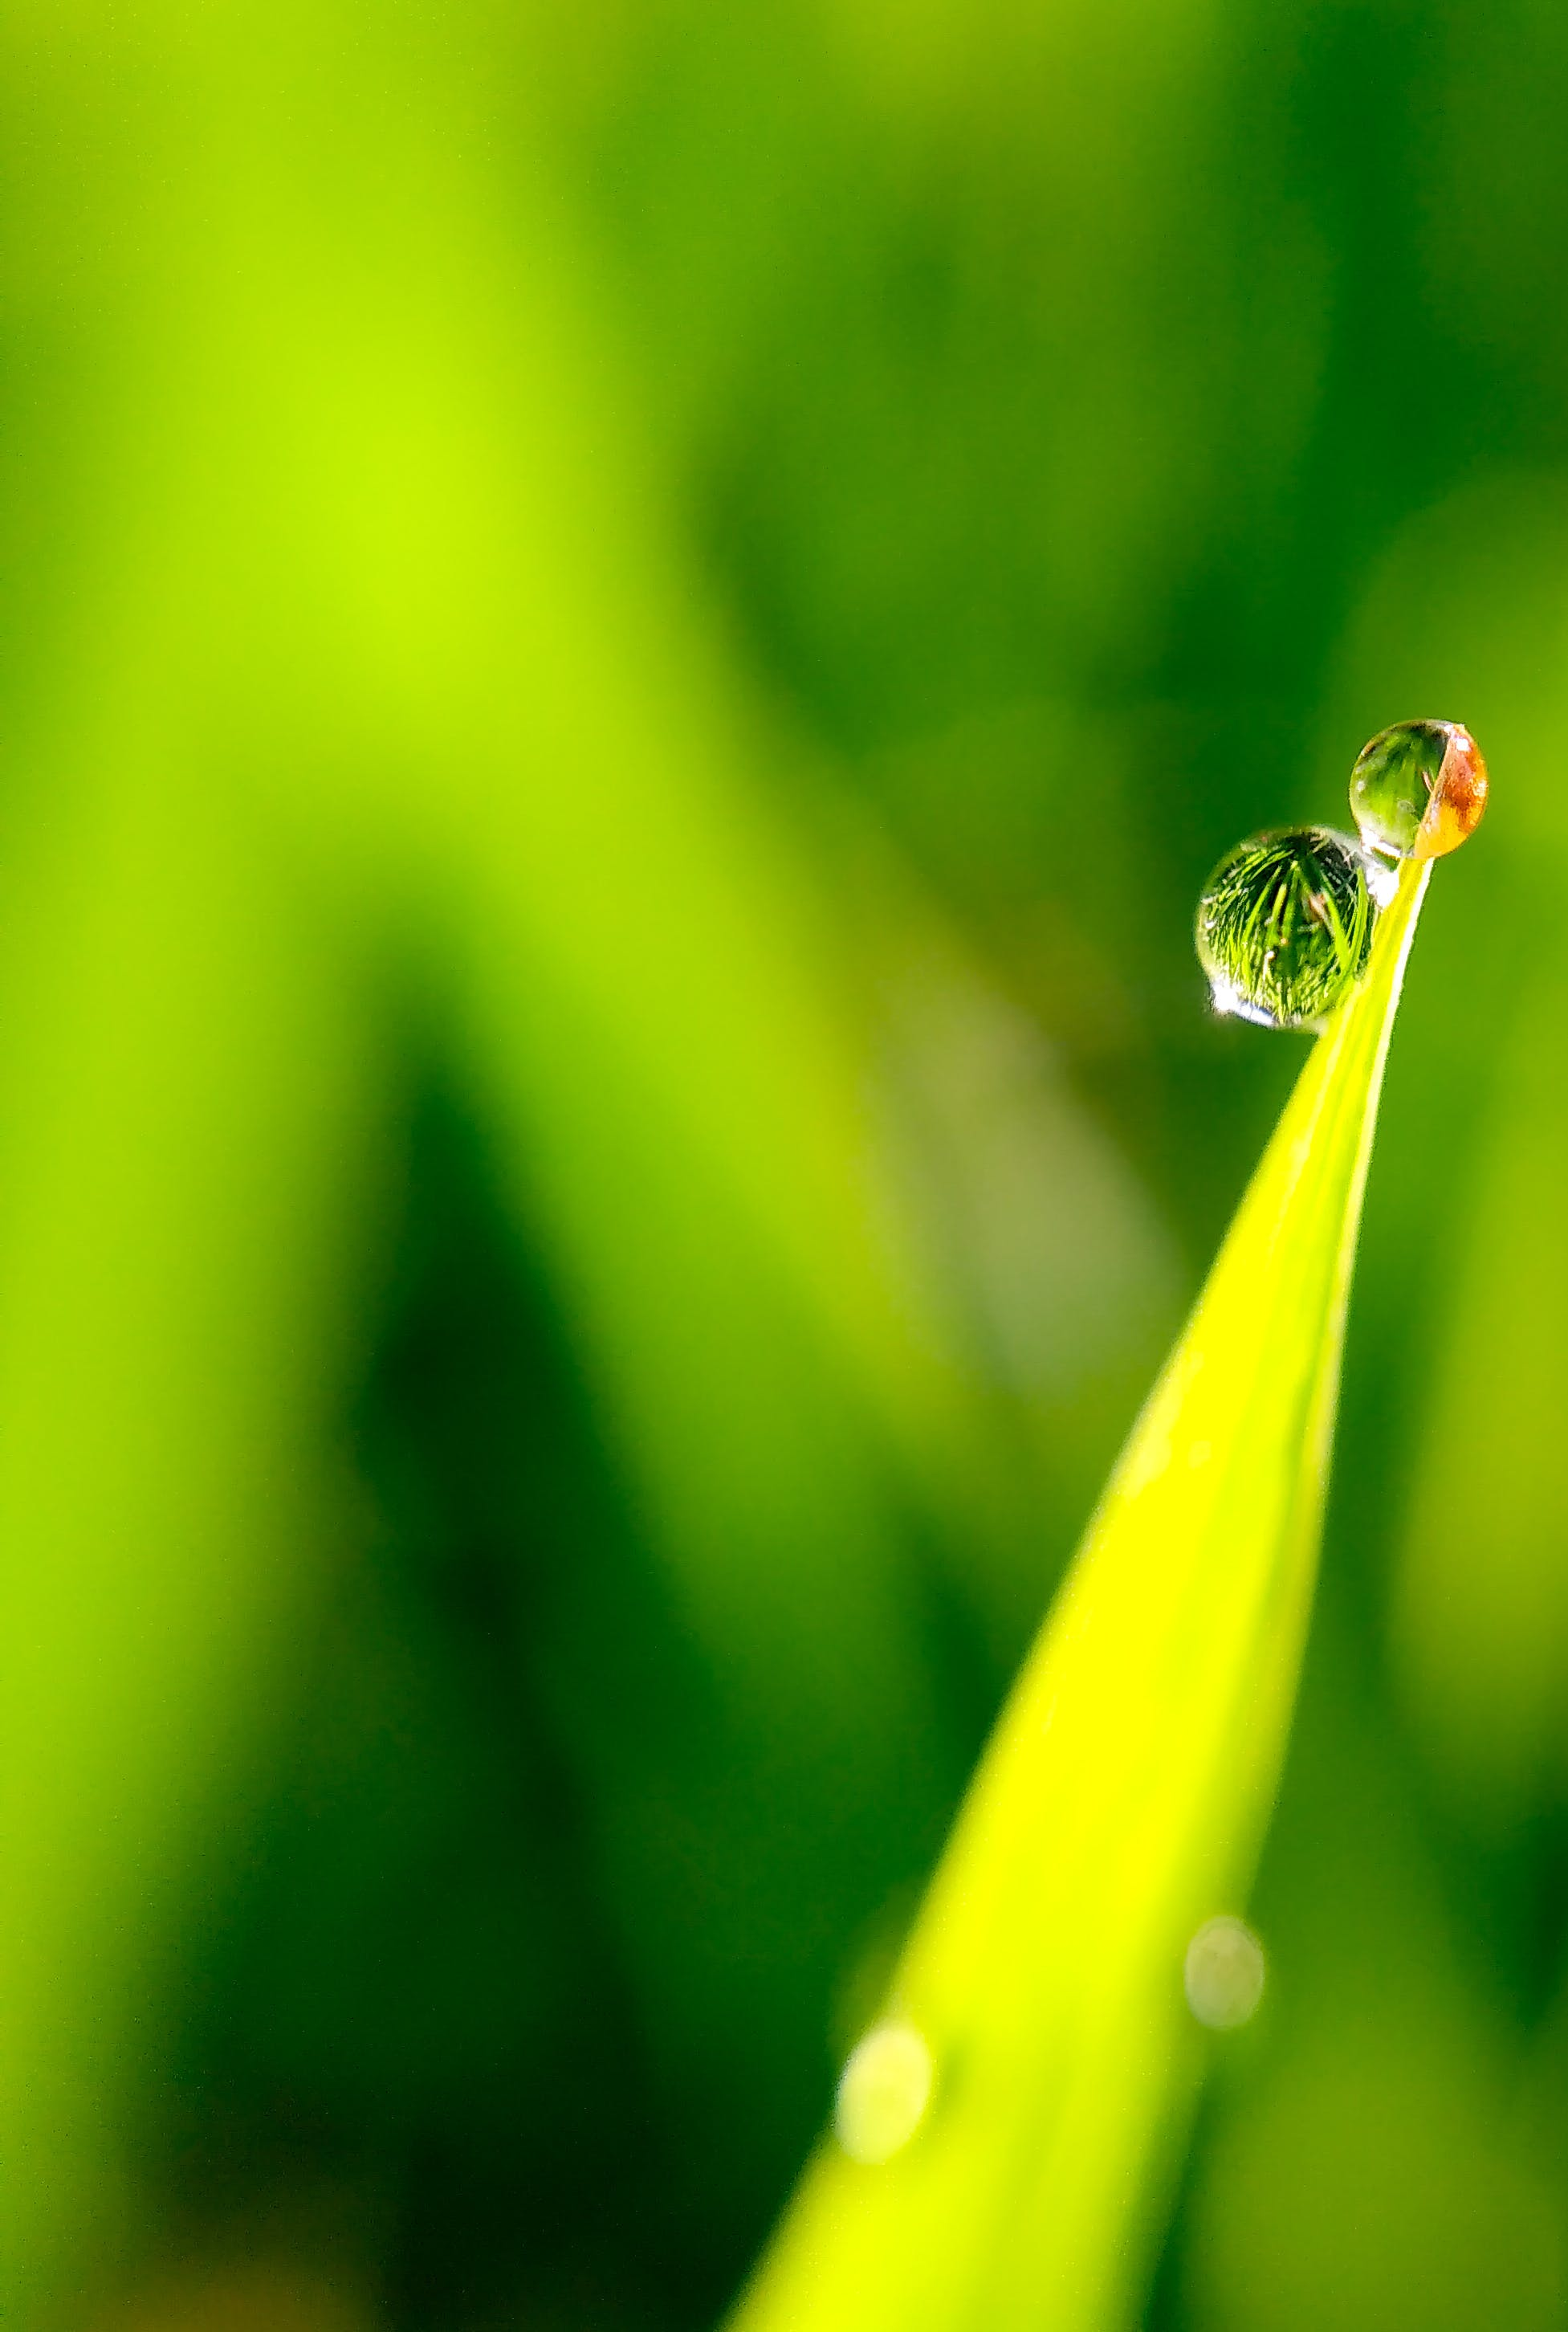 blur, close-up, dew